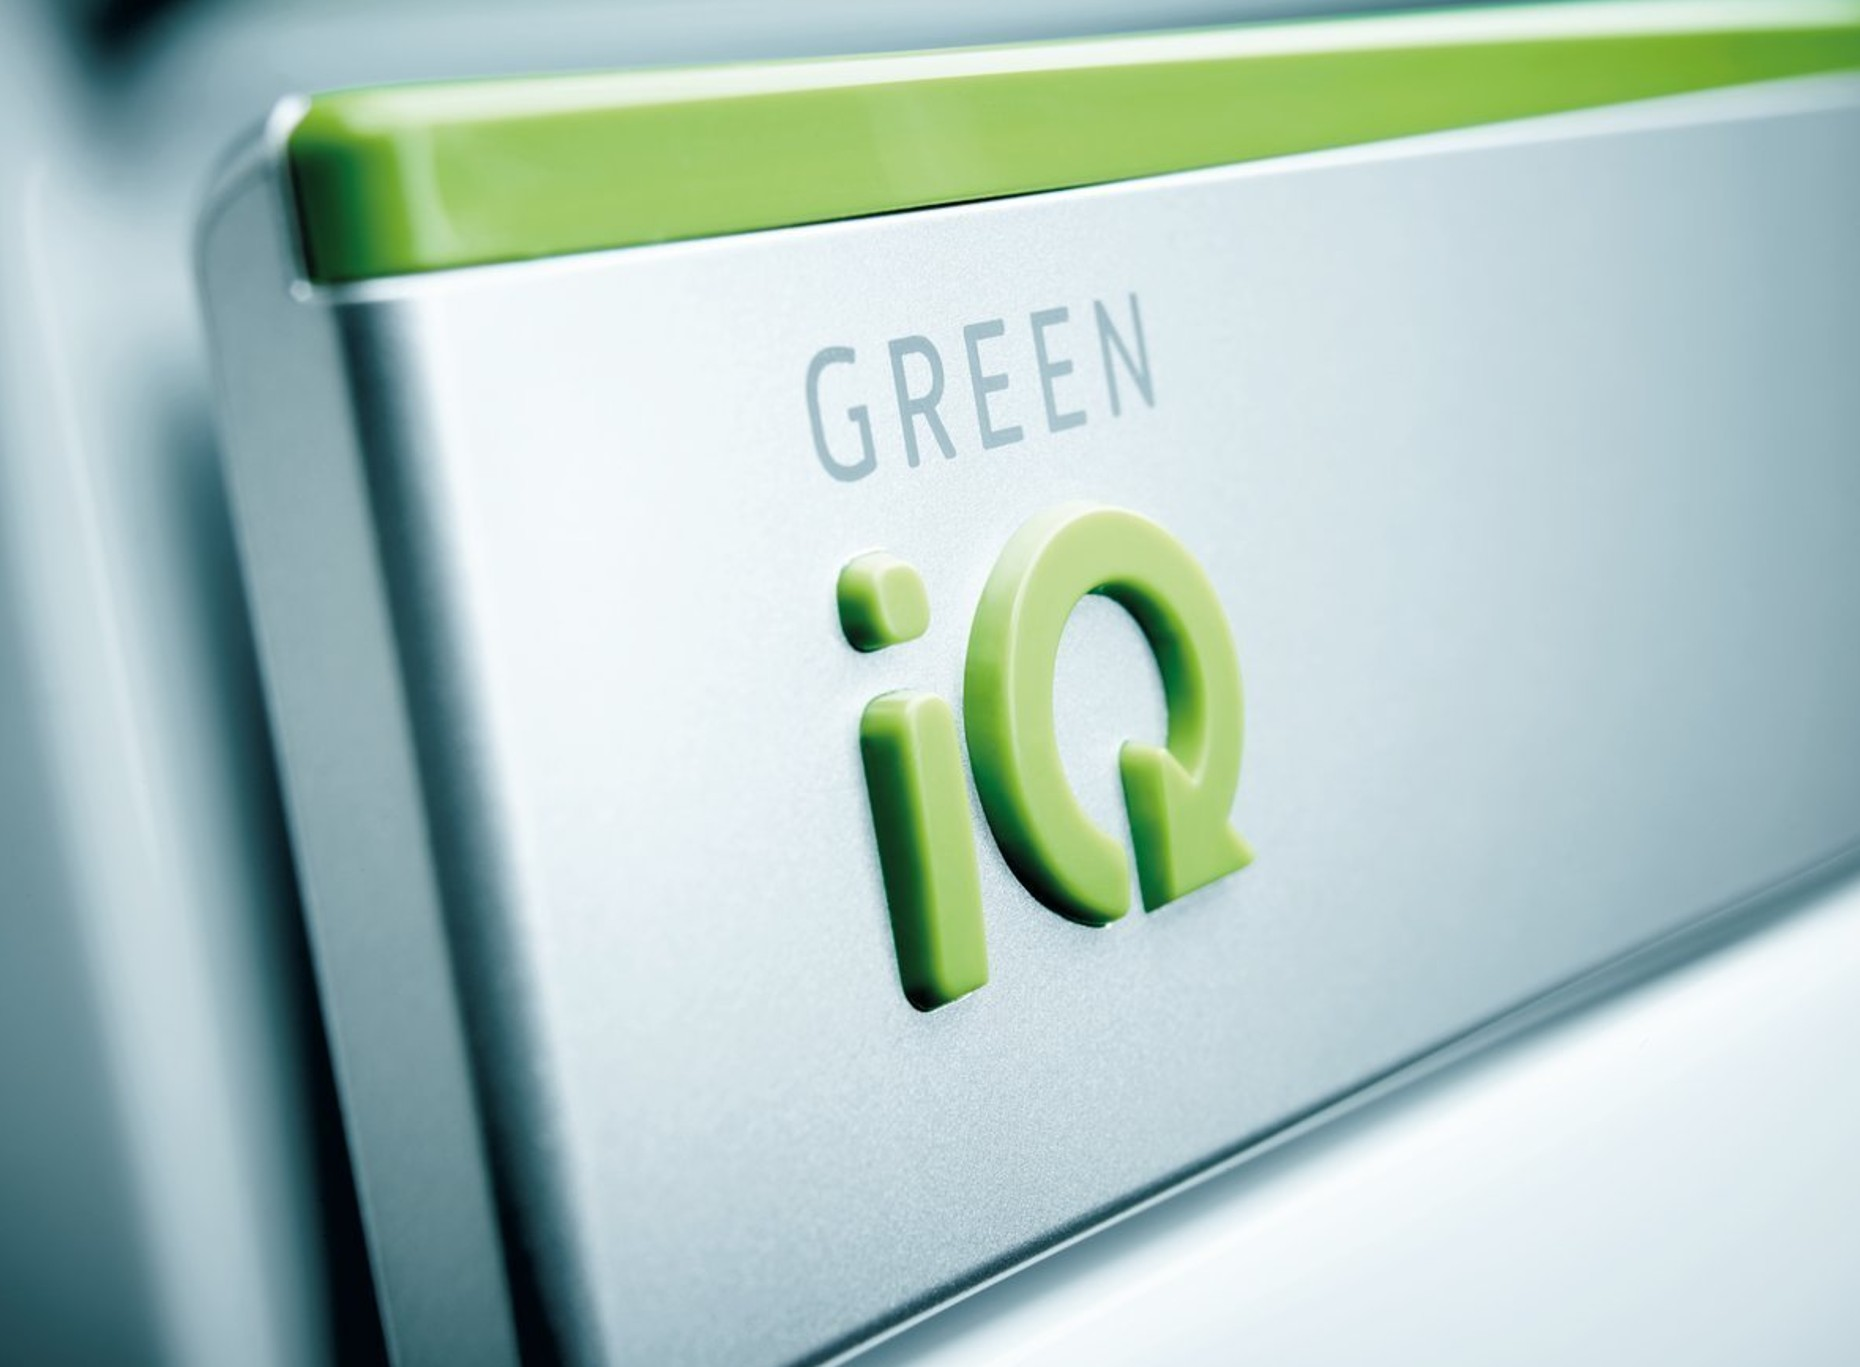 Ecotec Exclusive With Green Iq Combi Boiler Vaillant Uk Wiring Diagram The Premium Combination